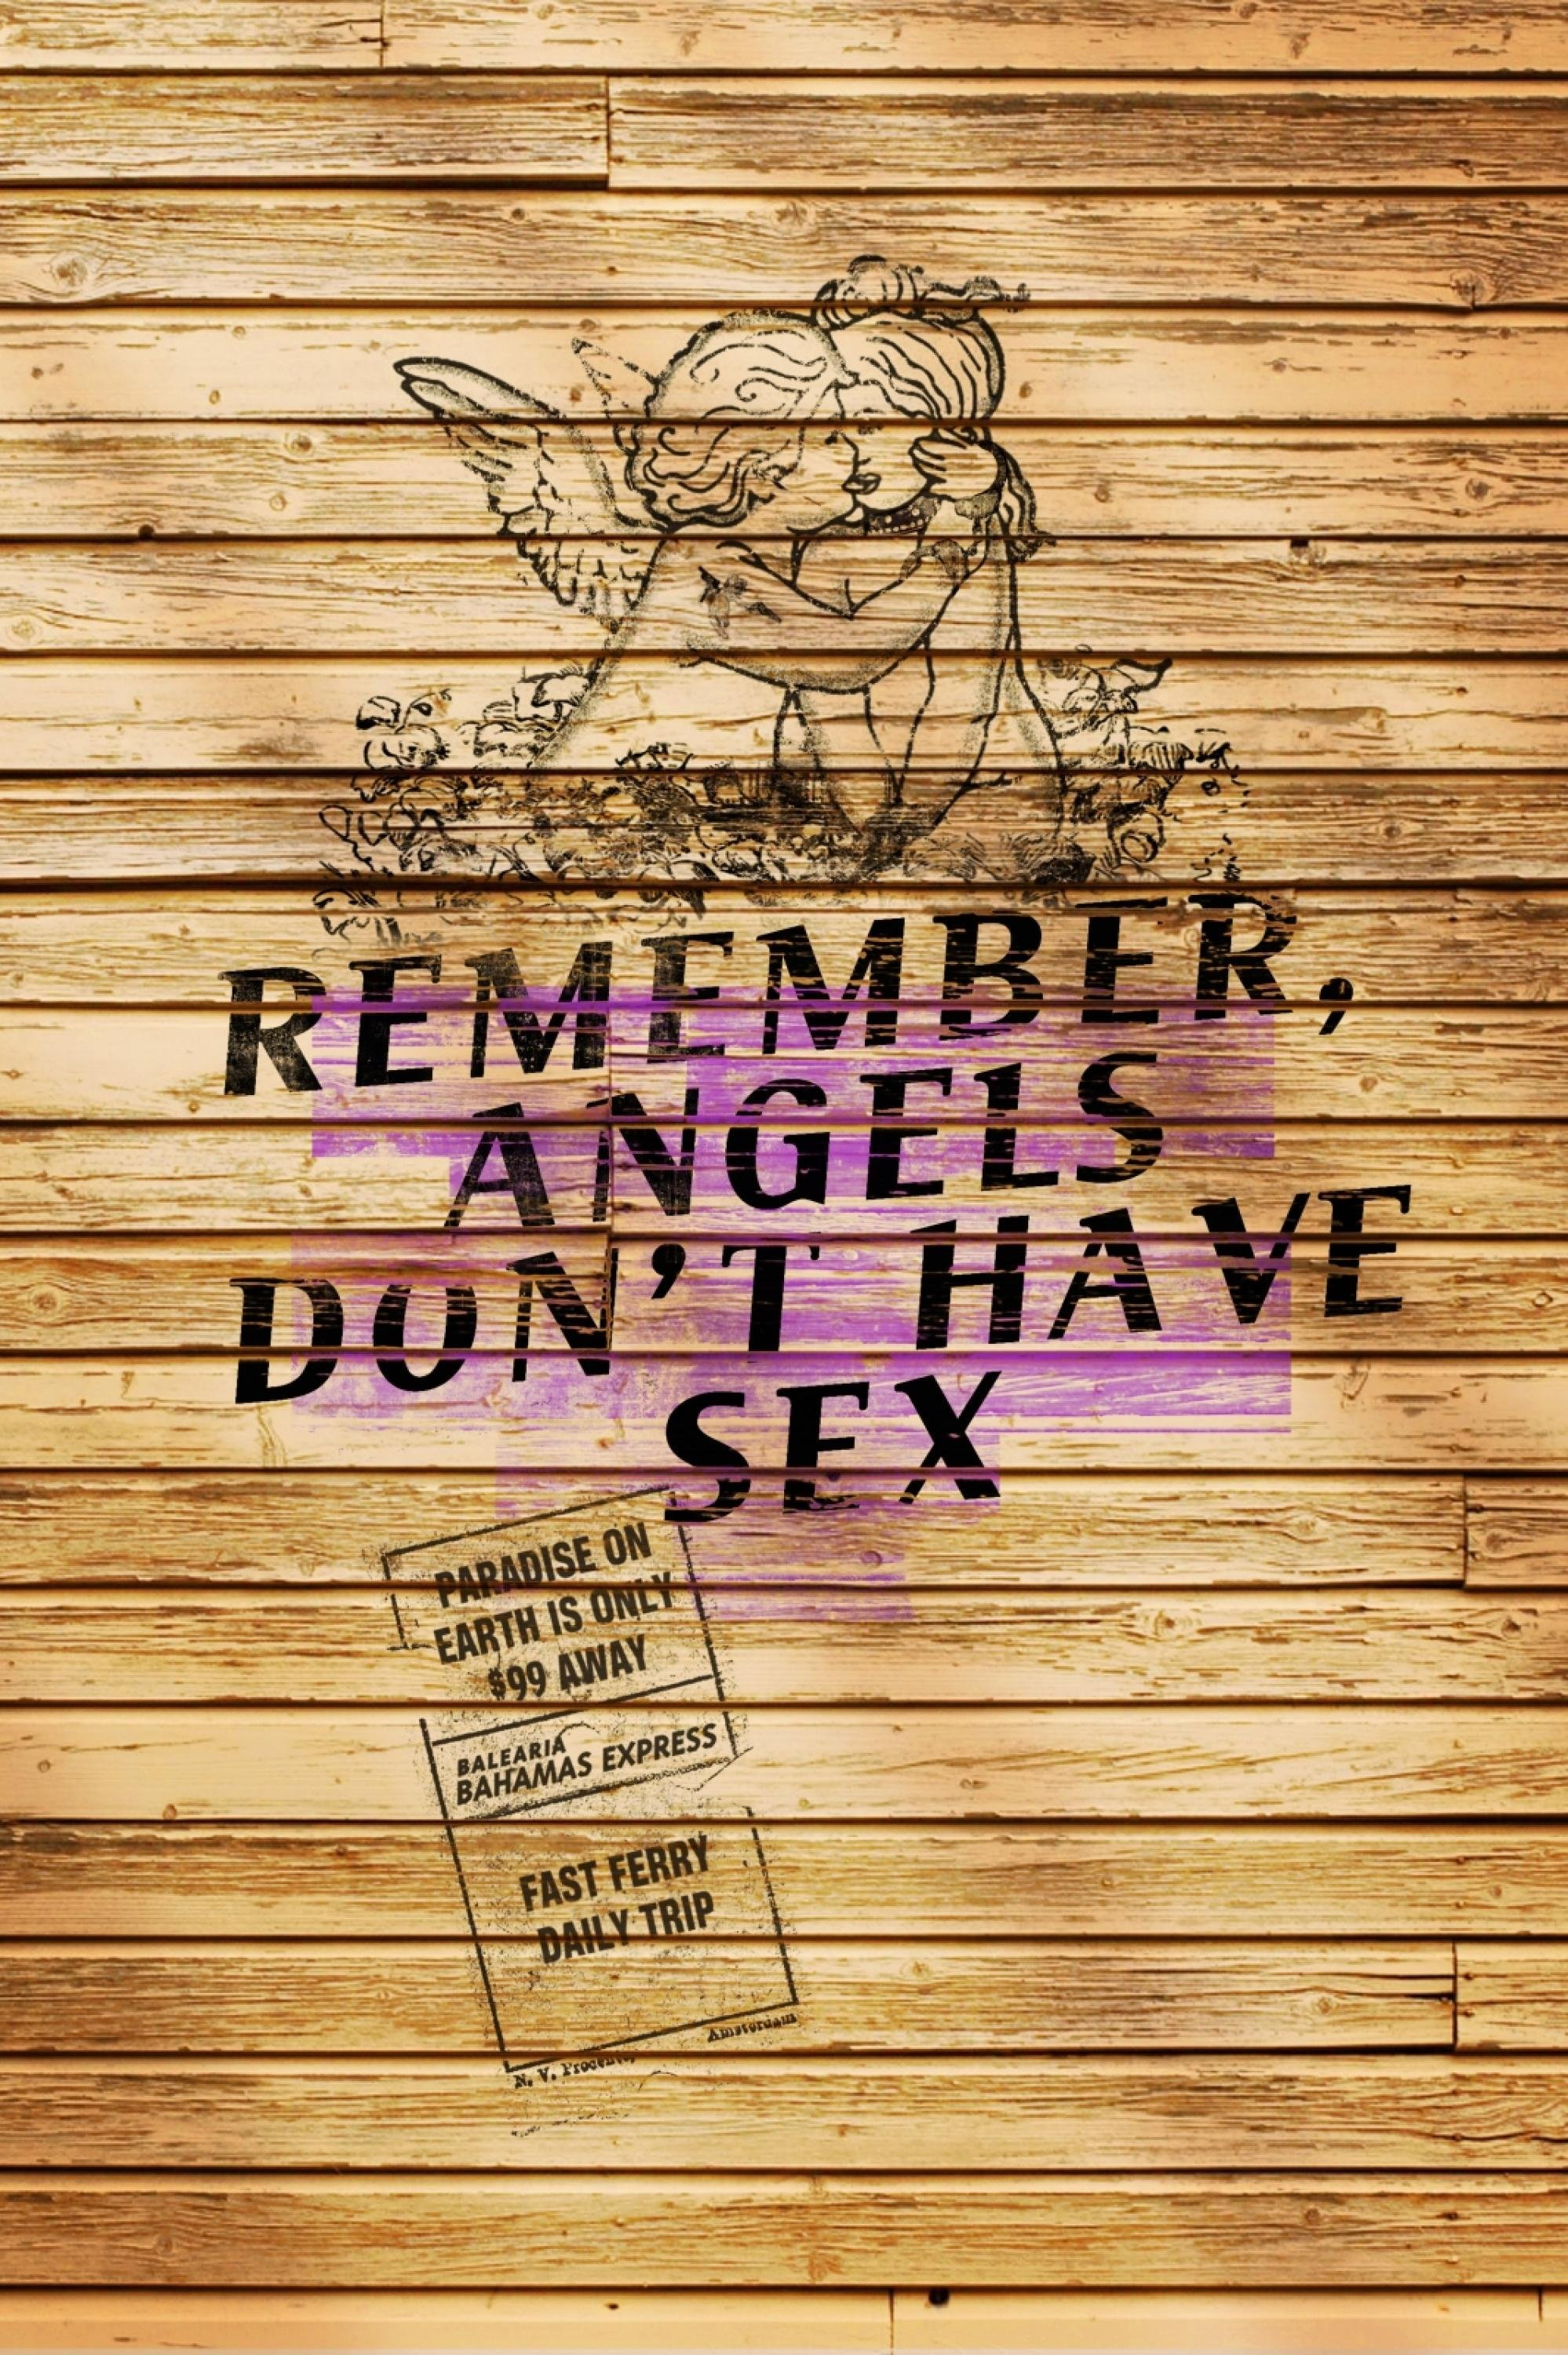 balearia-bahamas-express-remember-angels-2000-62378.jpg